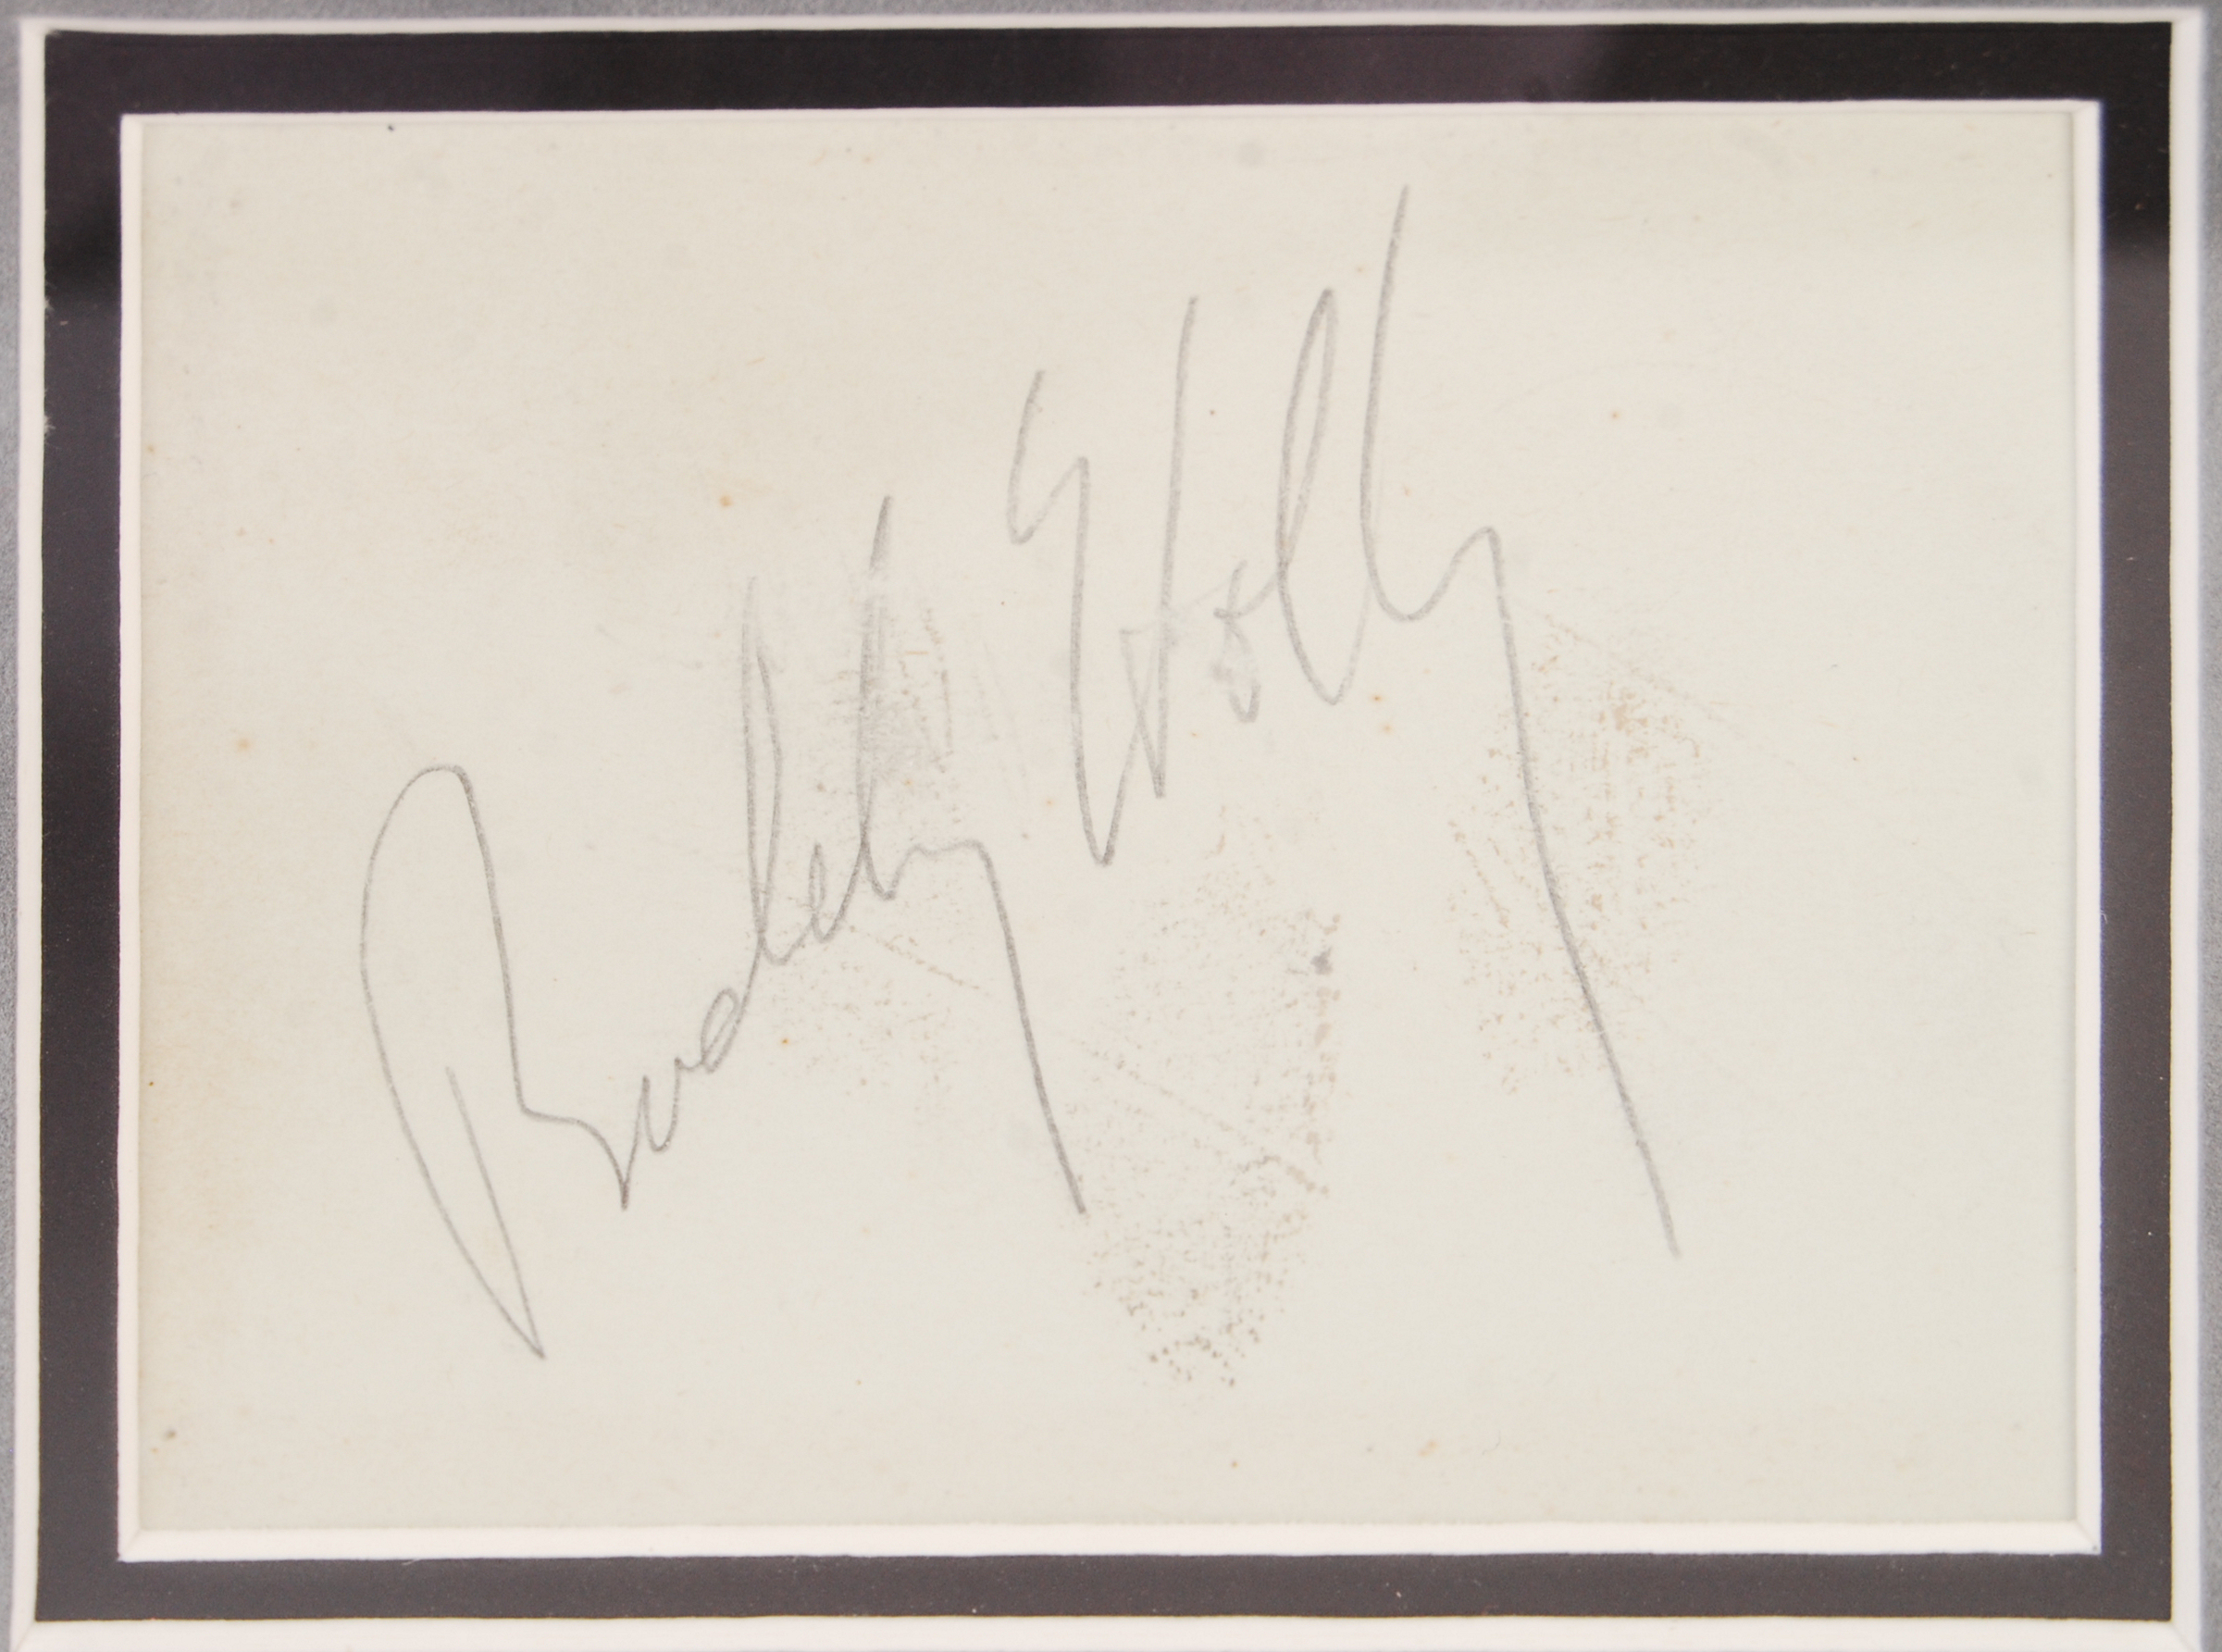 BUDDY HOLLY - INCREDIBLE RARE ORIGINAL AUTOGRAPH - Image 2 of 3